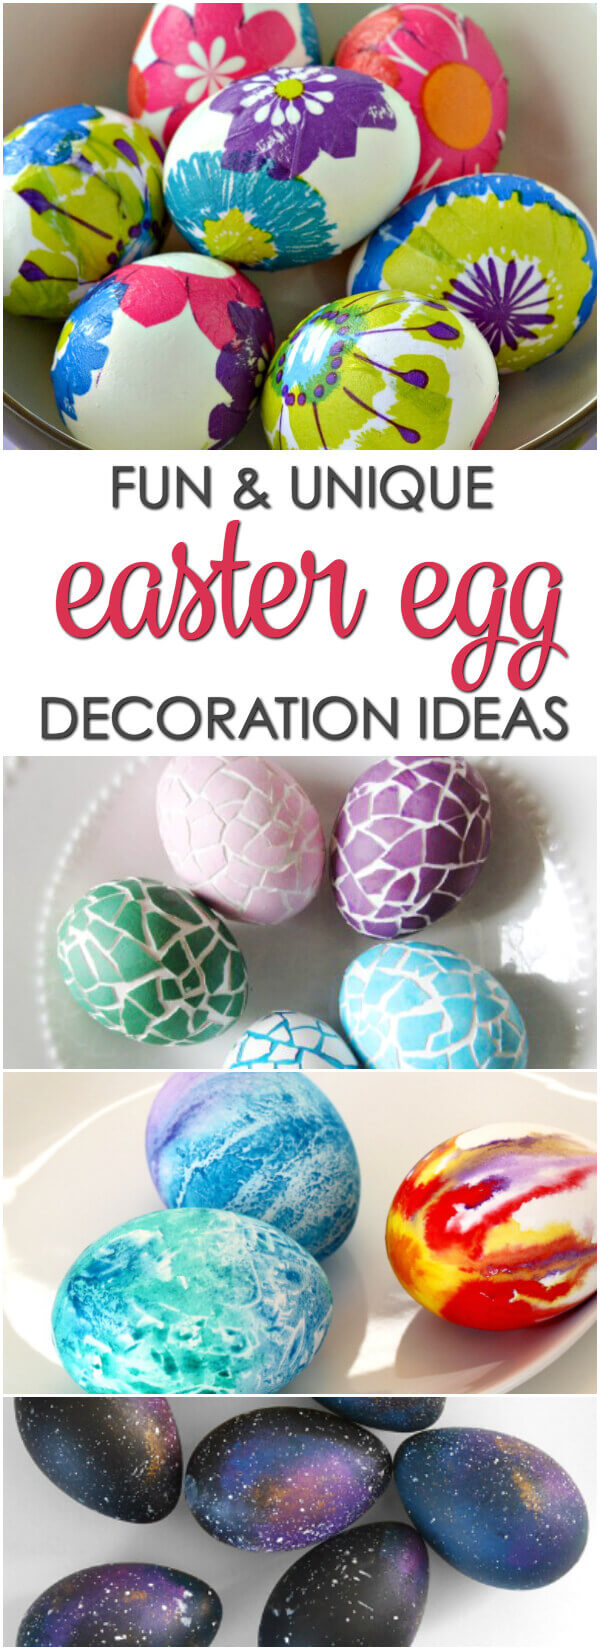 It's not Easter without decorated eggs! Here are 12 fun and unique Easter Egg Decorating Ideas kids love!